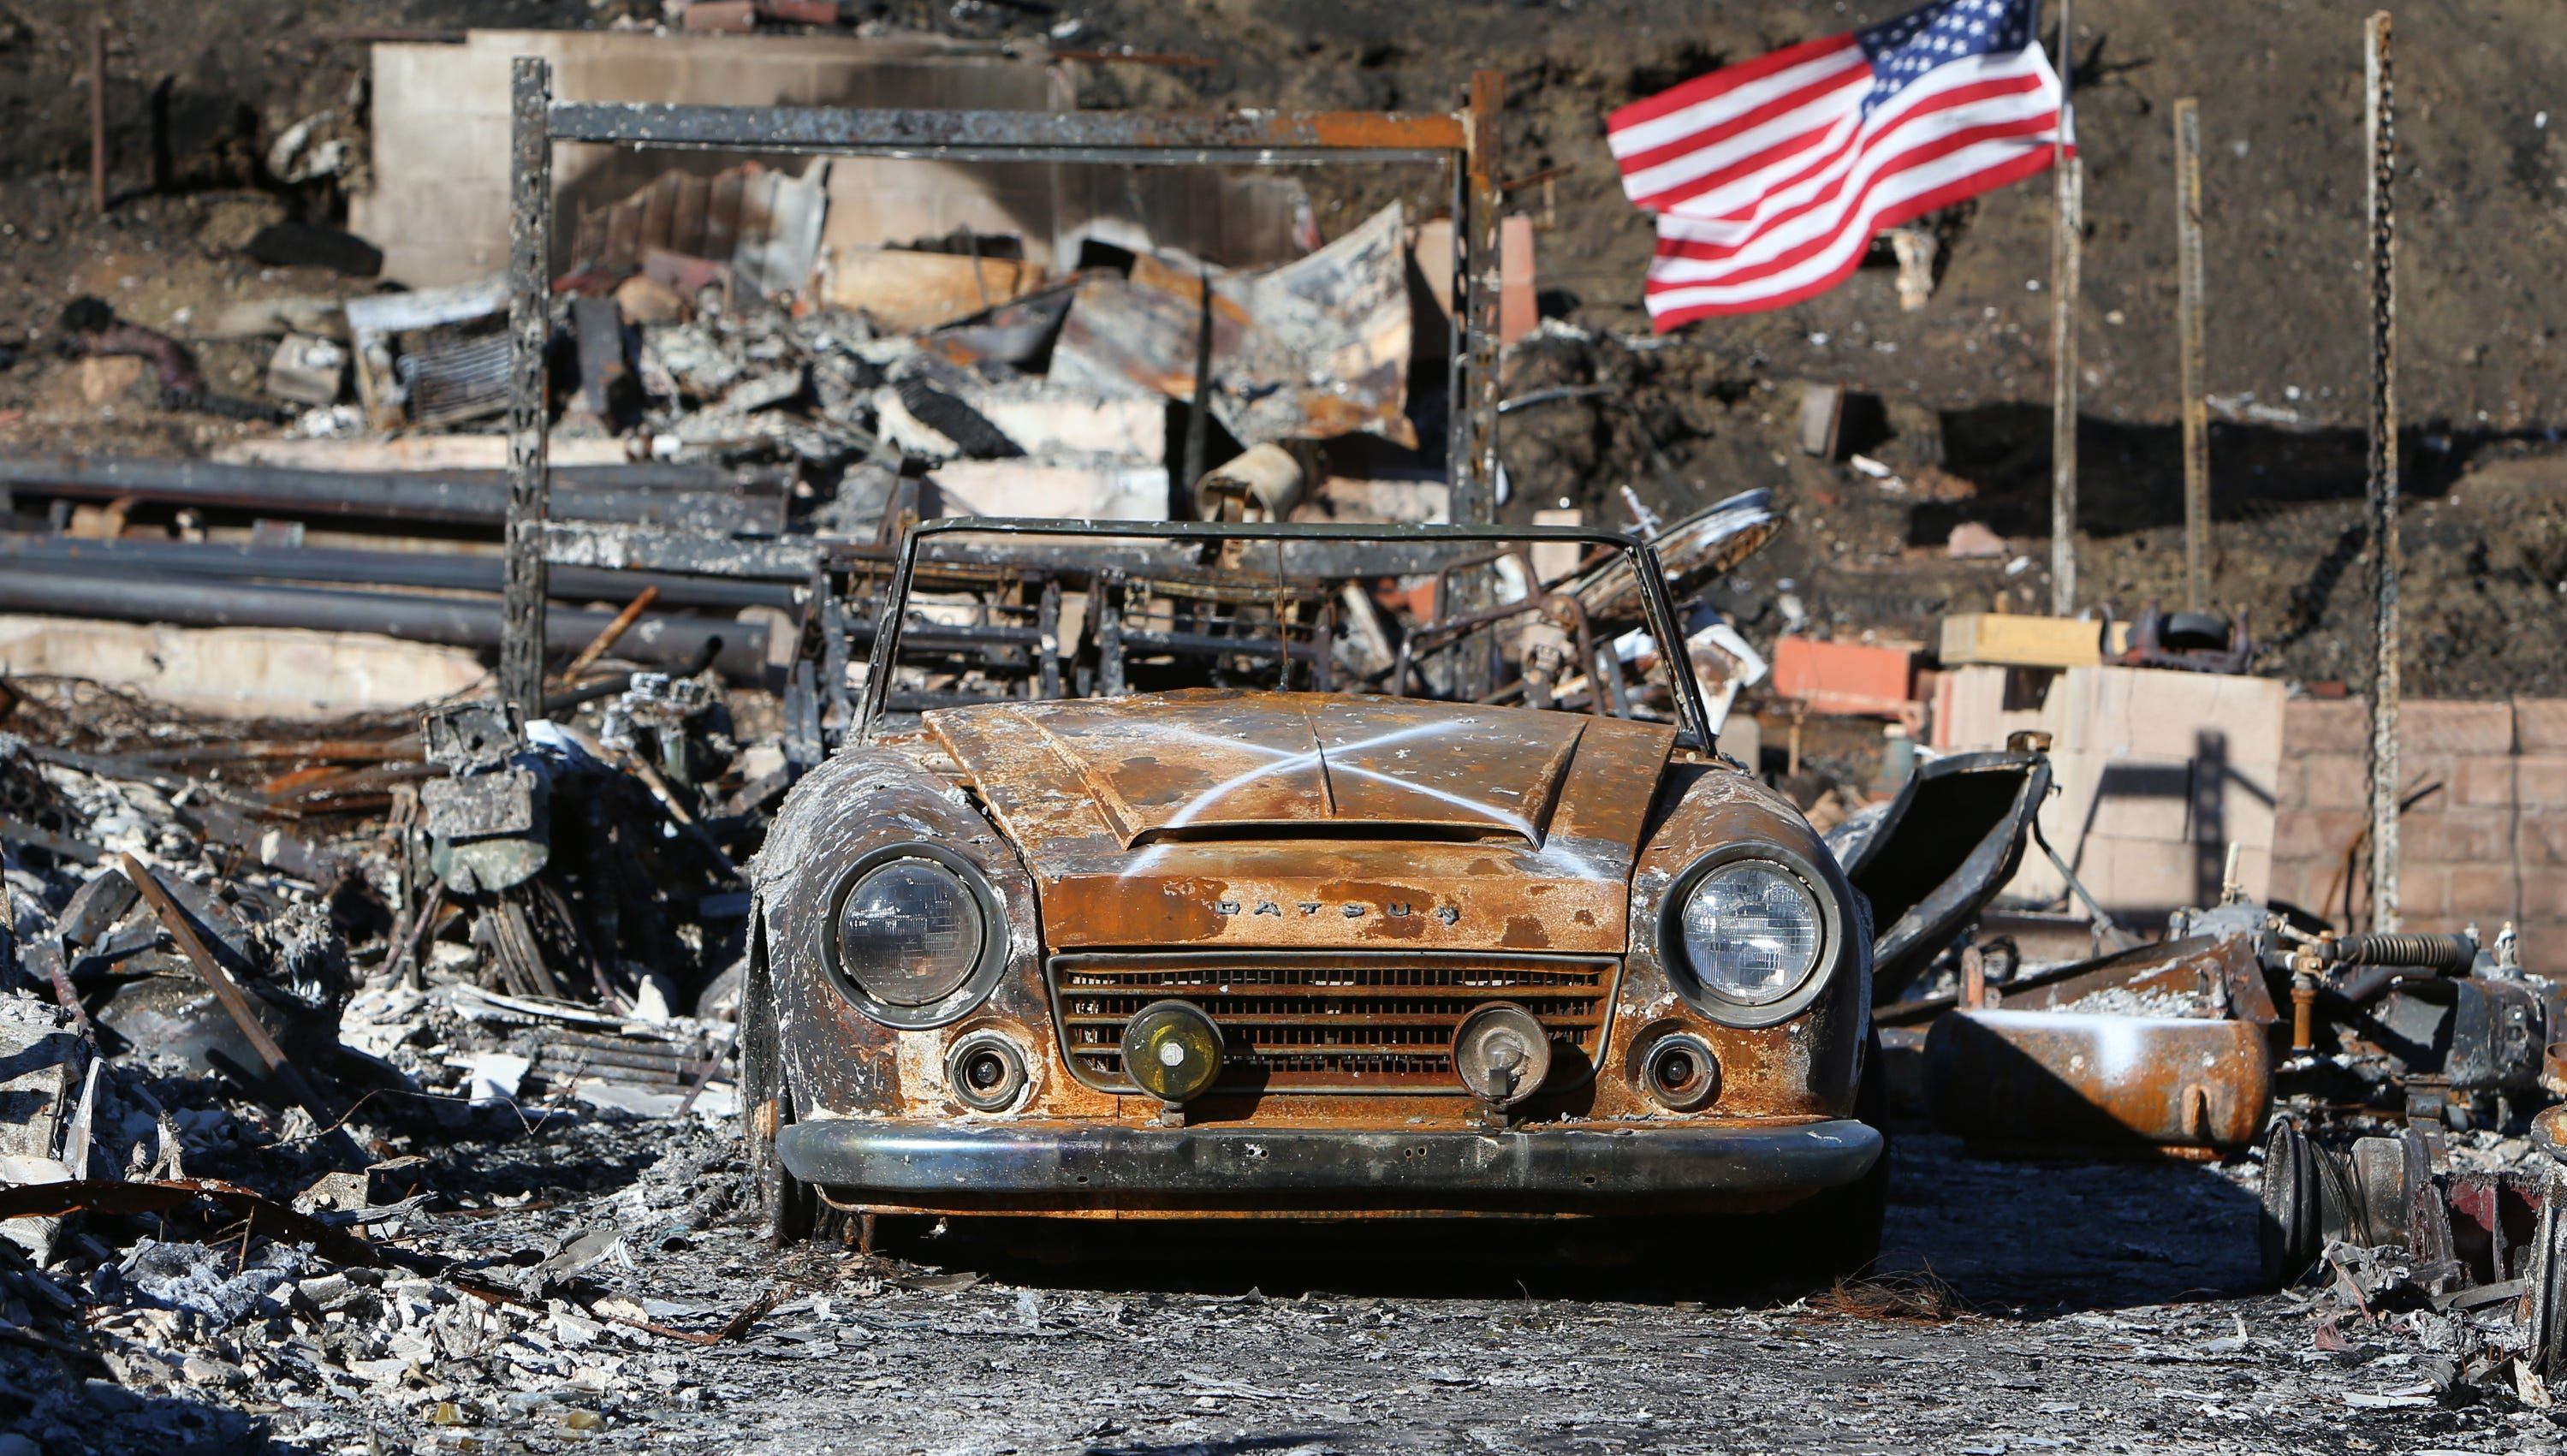 An American flag waves in the wind on a property in the Seminole Springs Mobile Park in Agoura Hills that was destroyed during the Woolsey Fire.